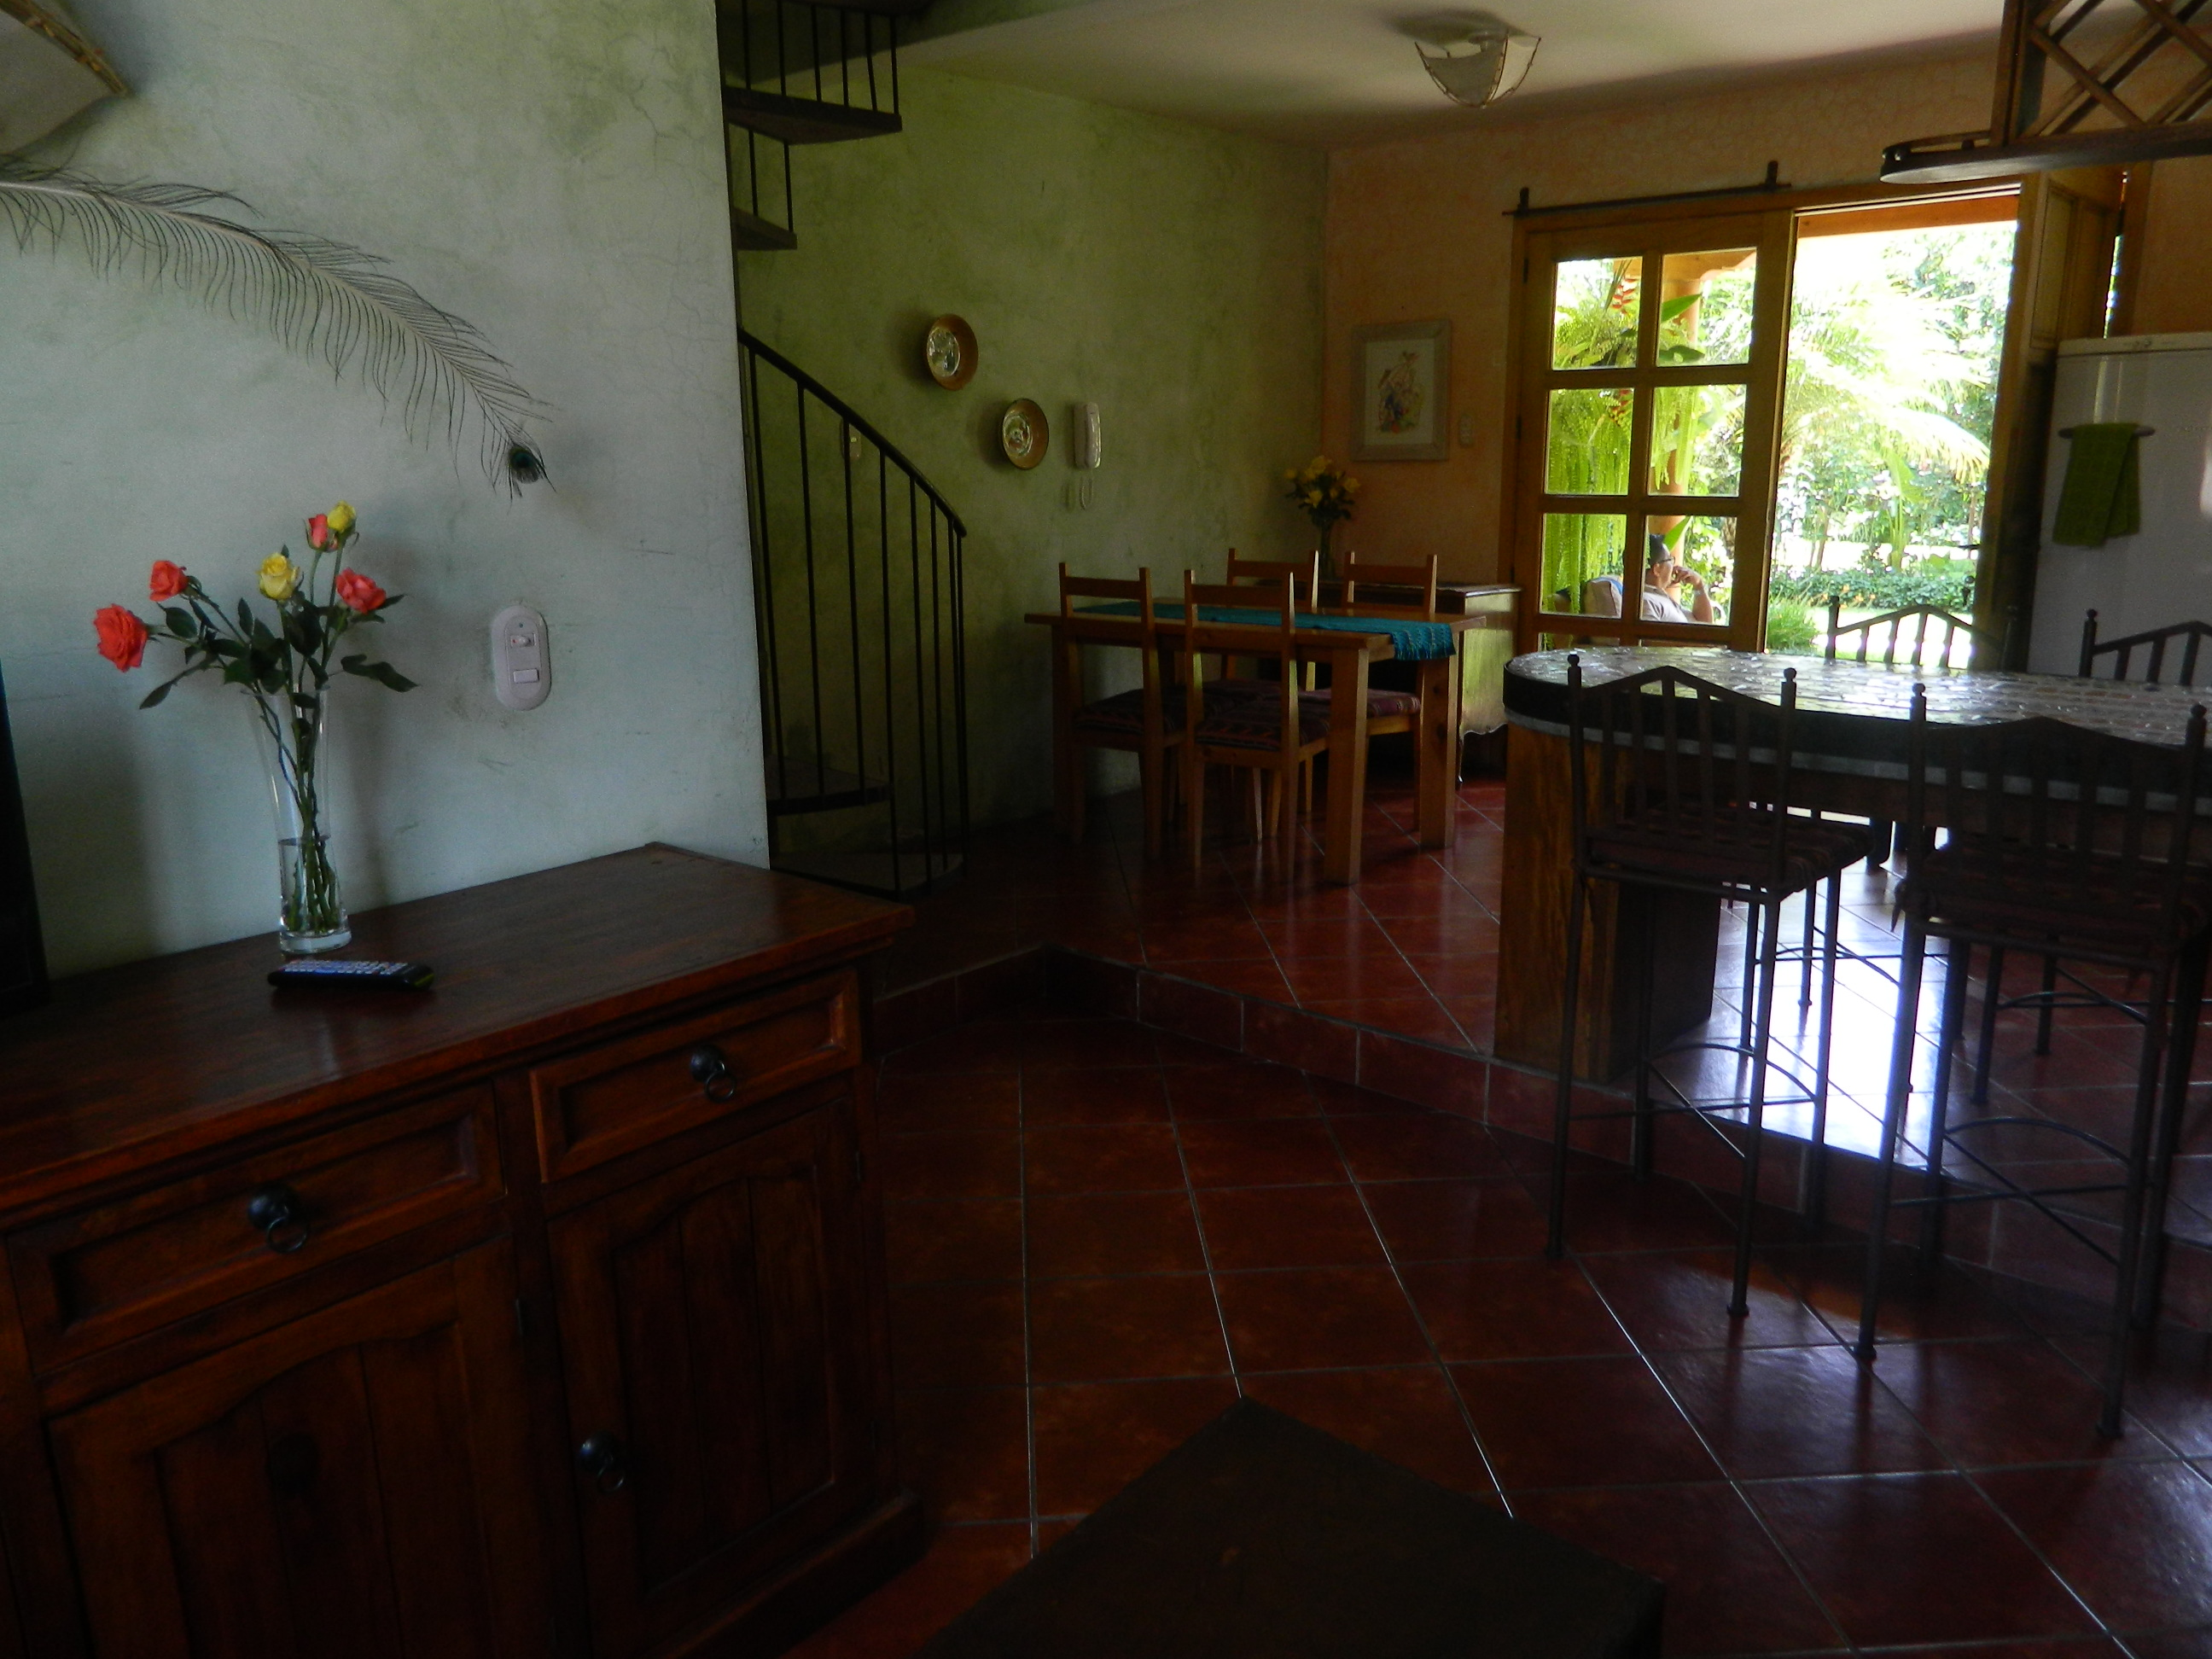 2020 LOVELY APARTMENT FOR RENT IN CENTRAL ANTIGUA (Furnished) ***Check Availability***